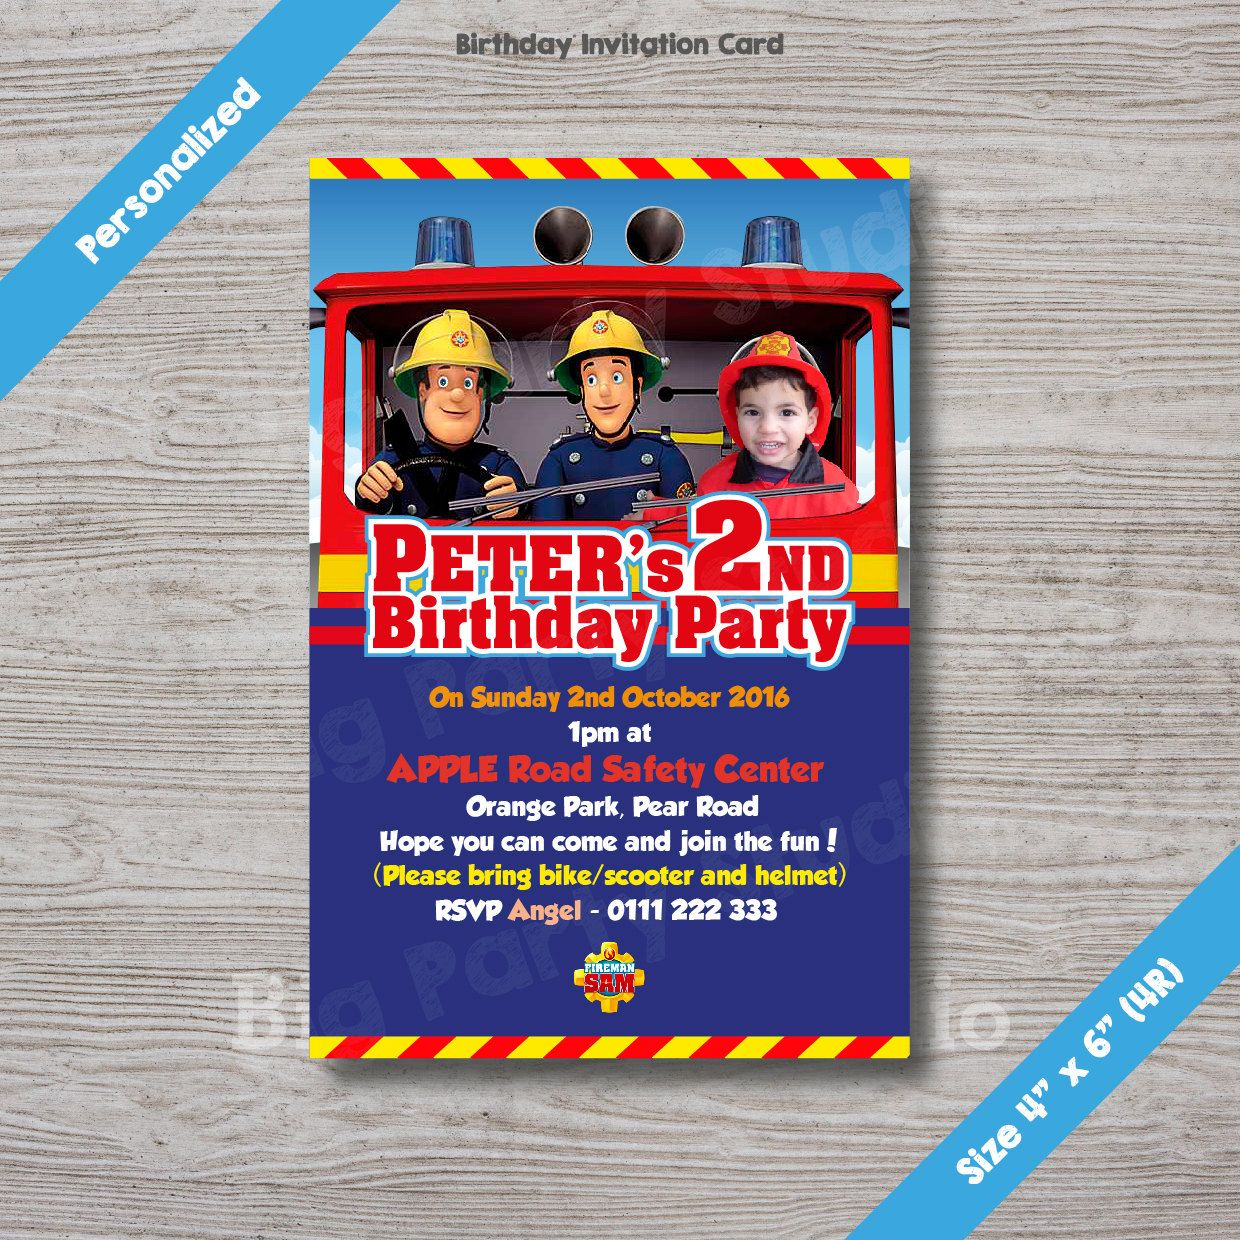 Fireman Sam Personalized Birthday Invitation Card, Fireman Sam ...